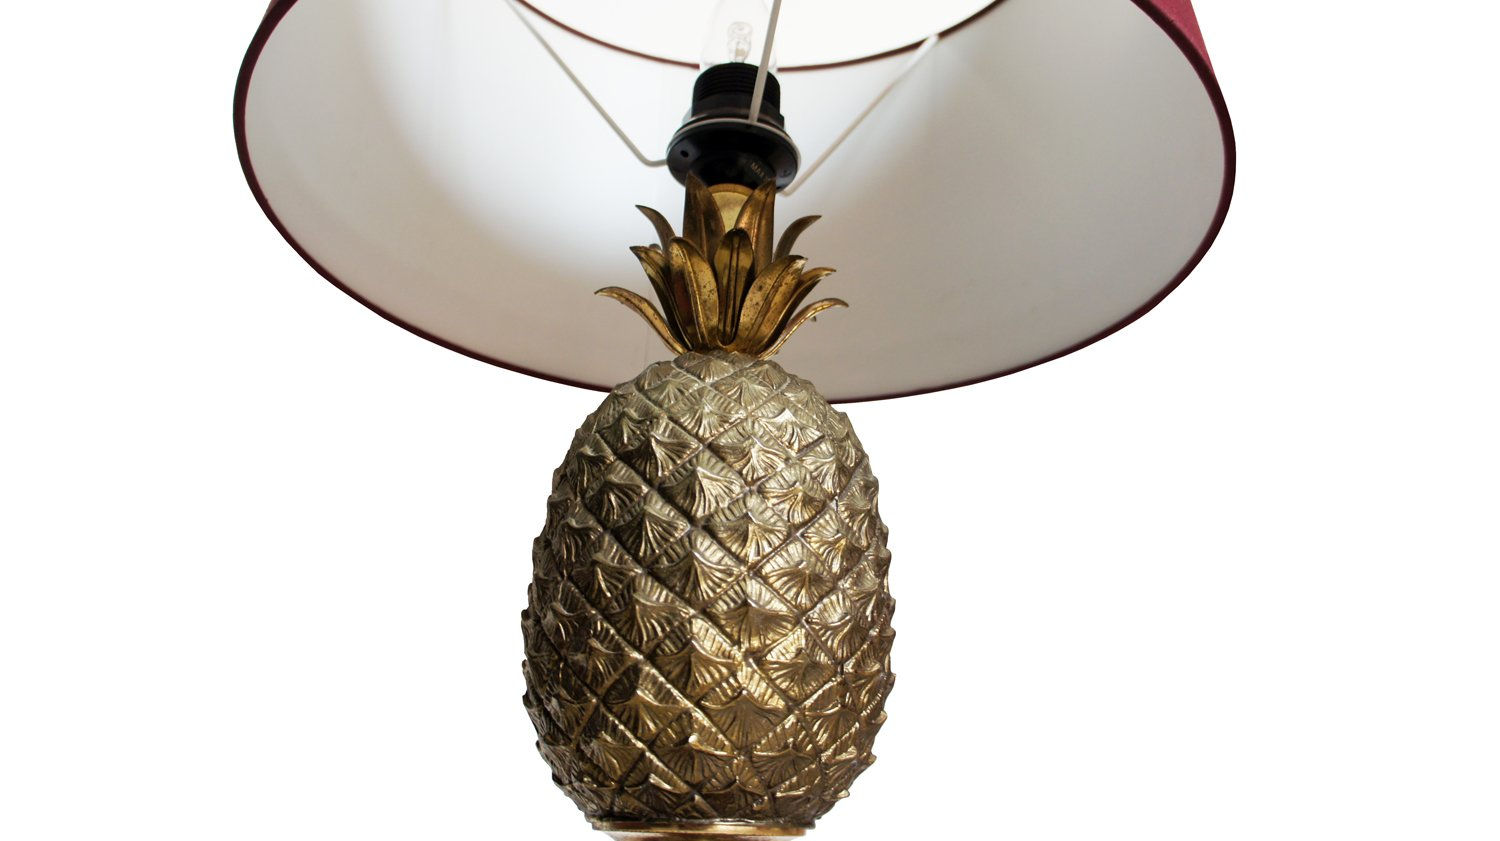 Mid century pineapple table lamp by mauro manetti en venta en pamono mid century pineapple table lamp by mauro manetti aloadofball Images